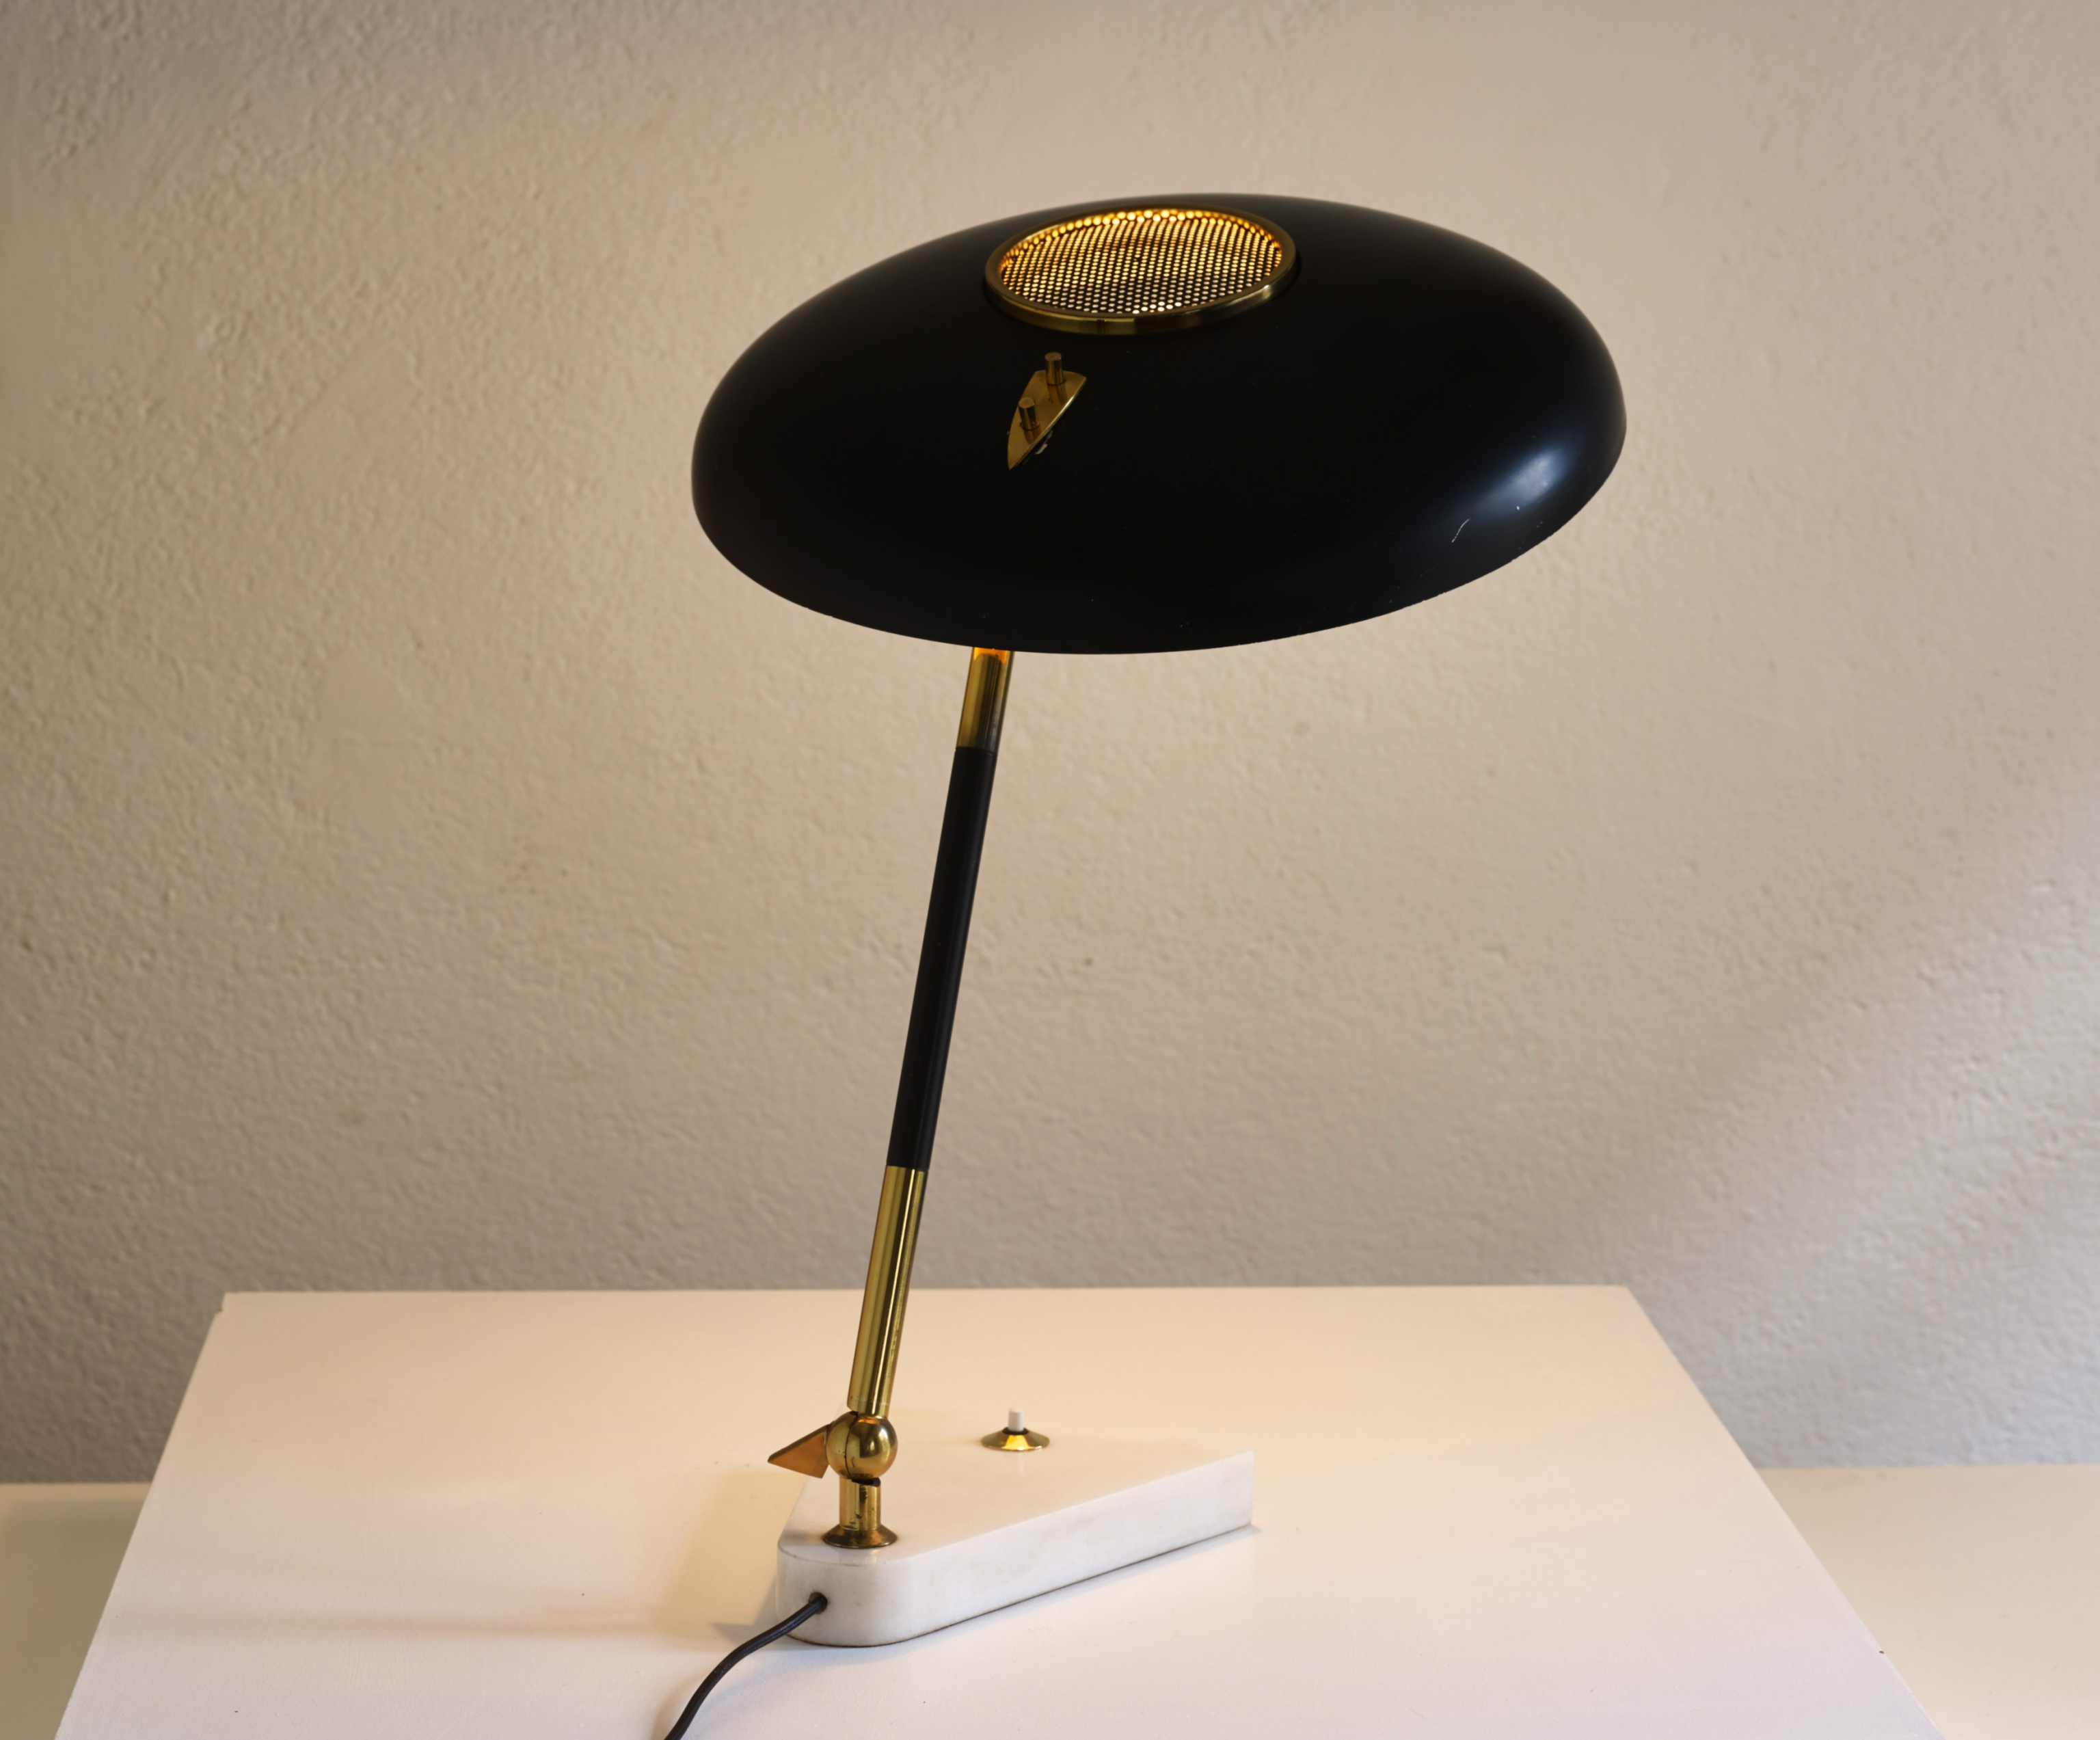 stilux-table-lamp-image-01